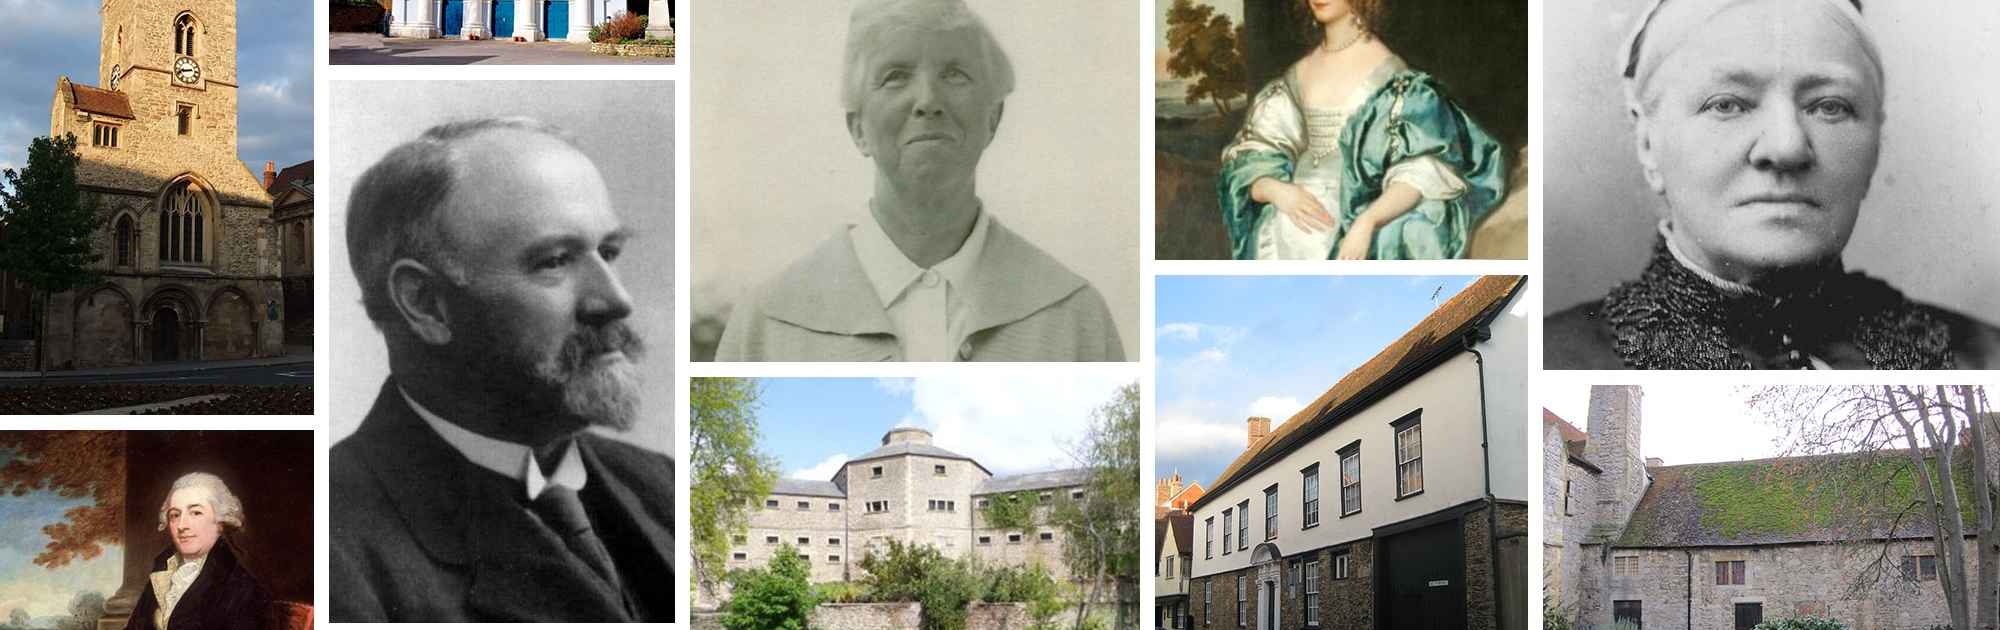 photo montage of various historical buildings and people from Abingdon